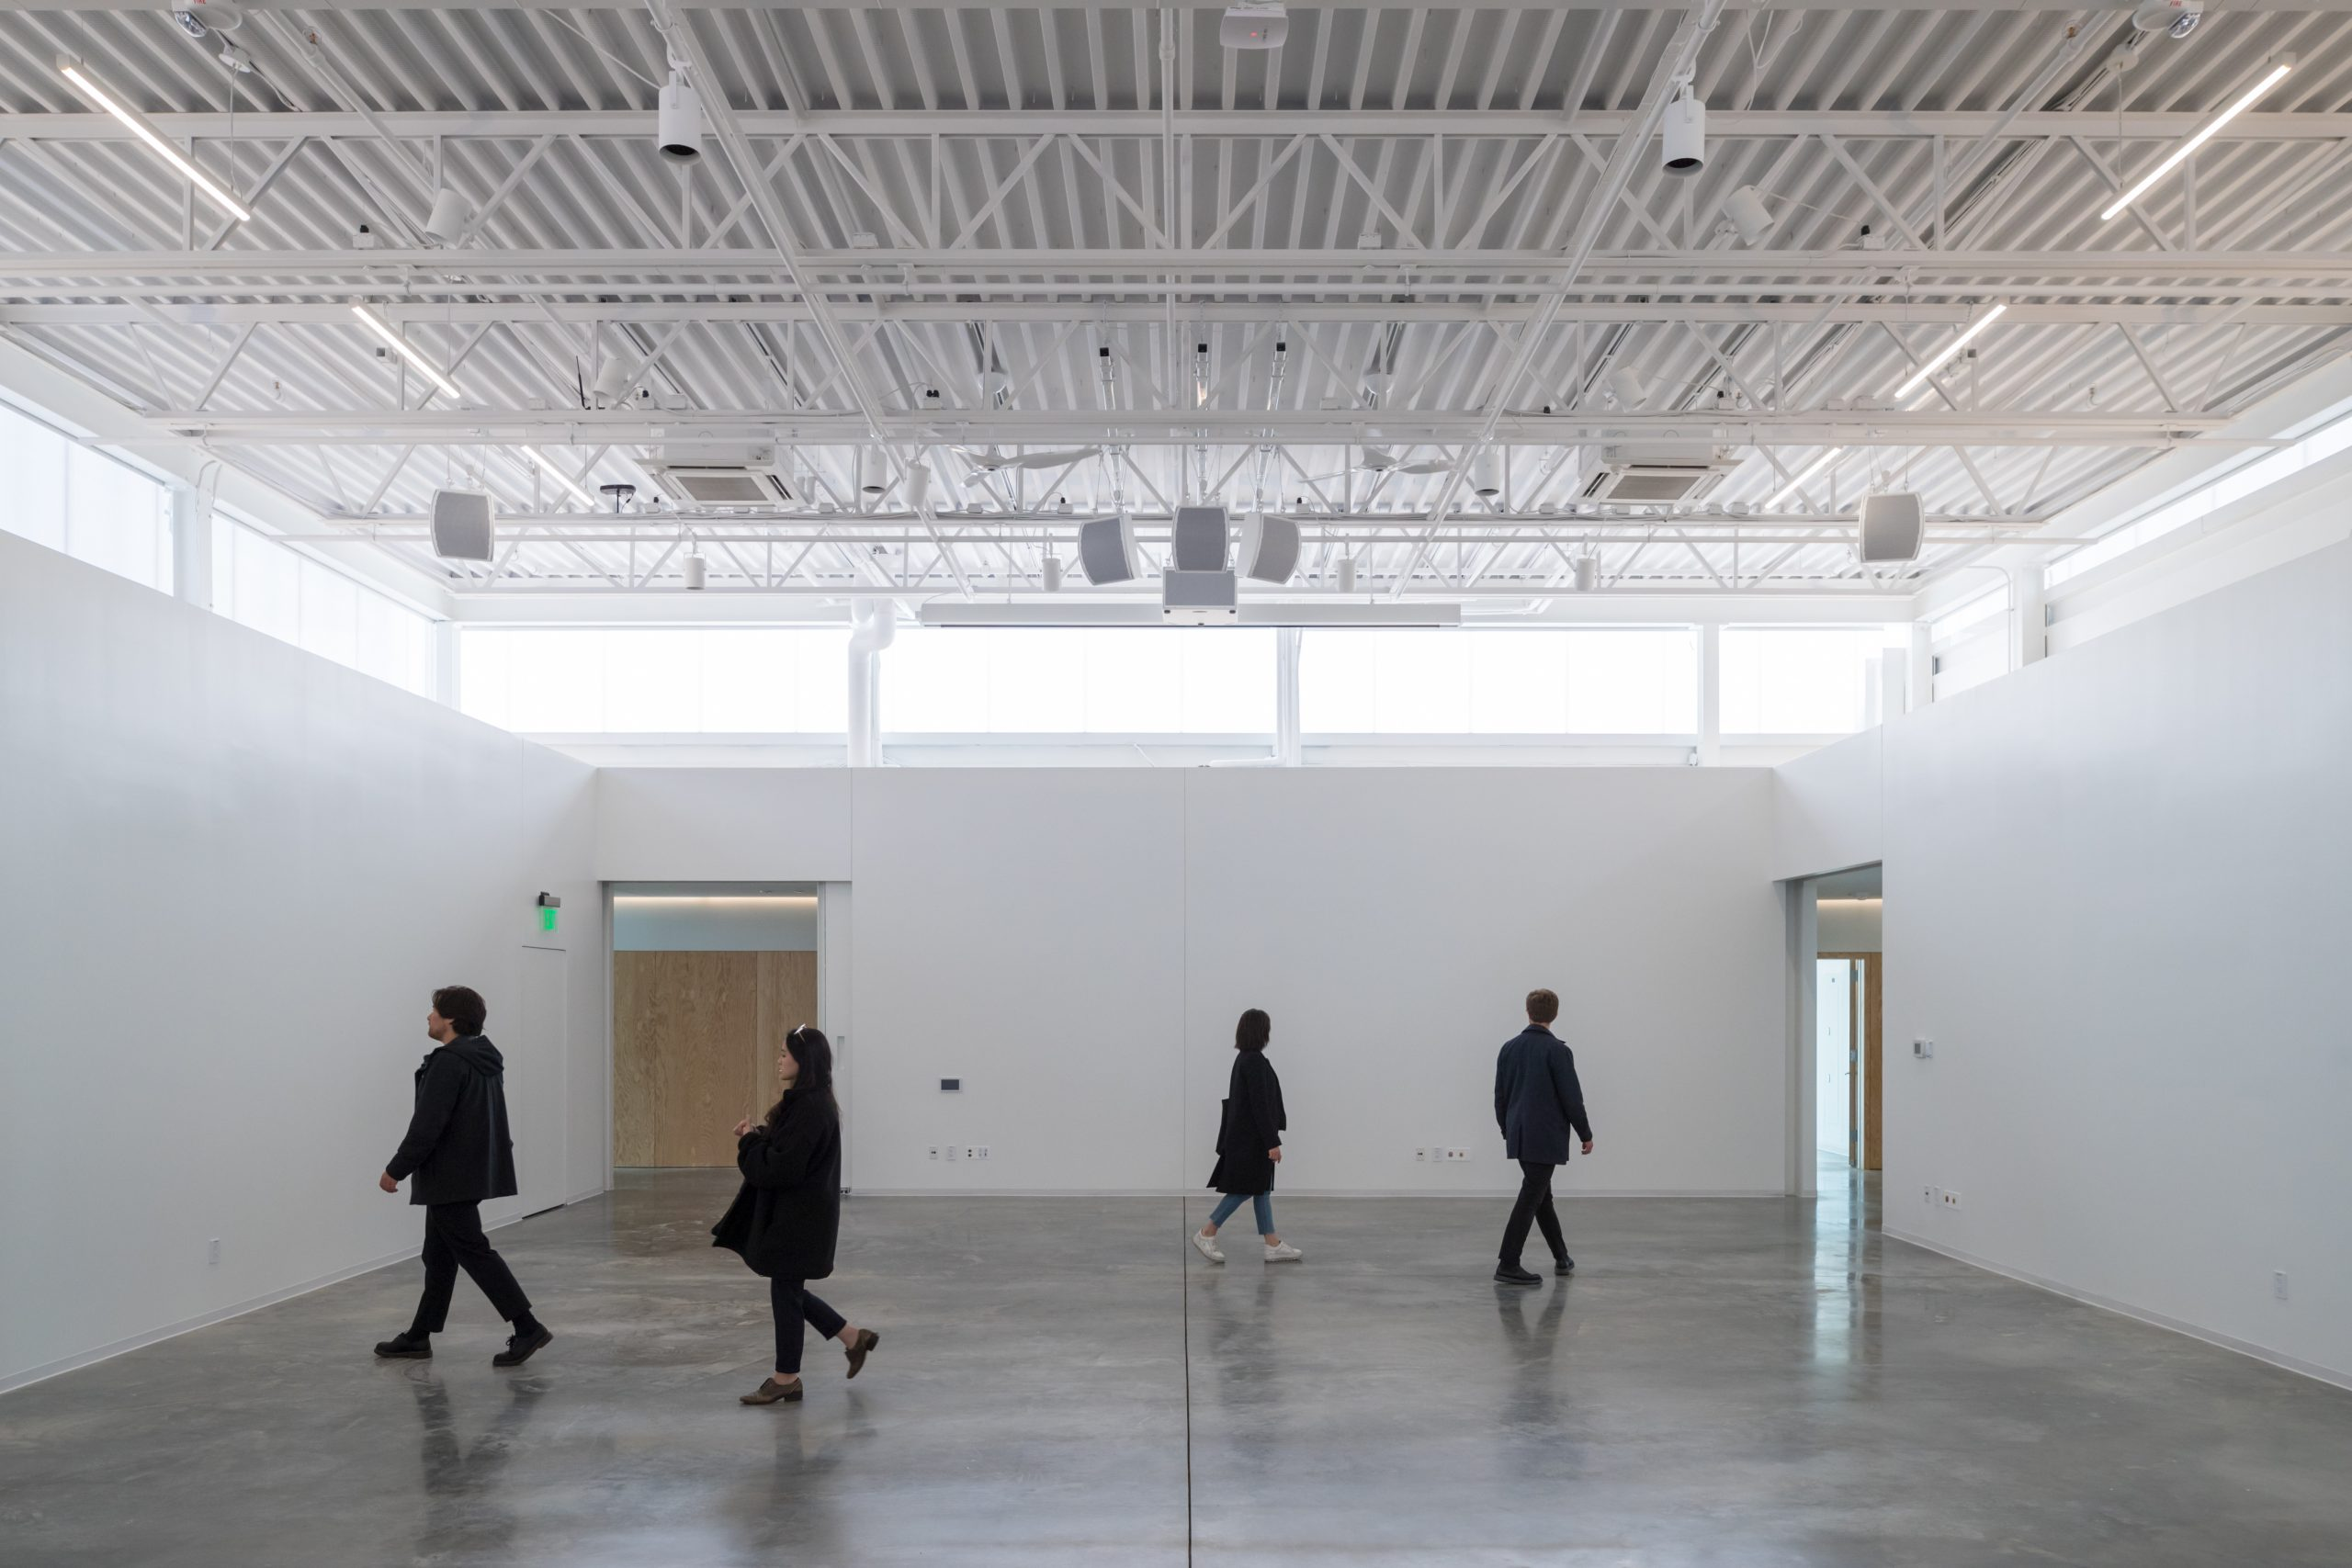 People walking around in an empty studio